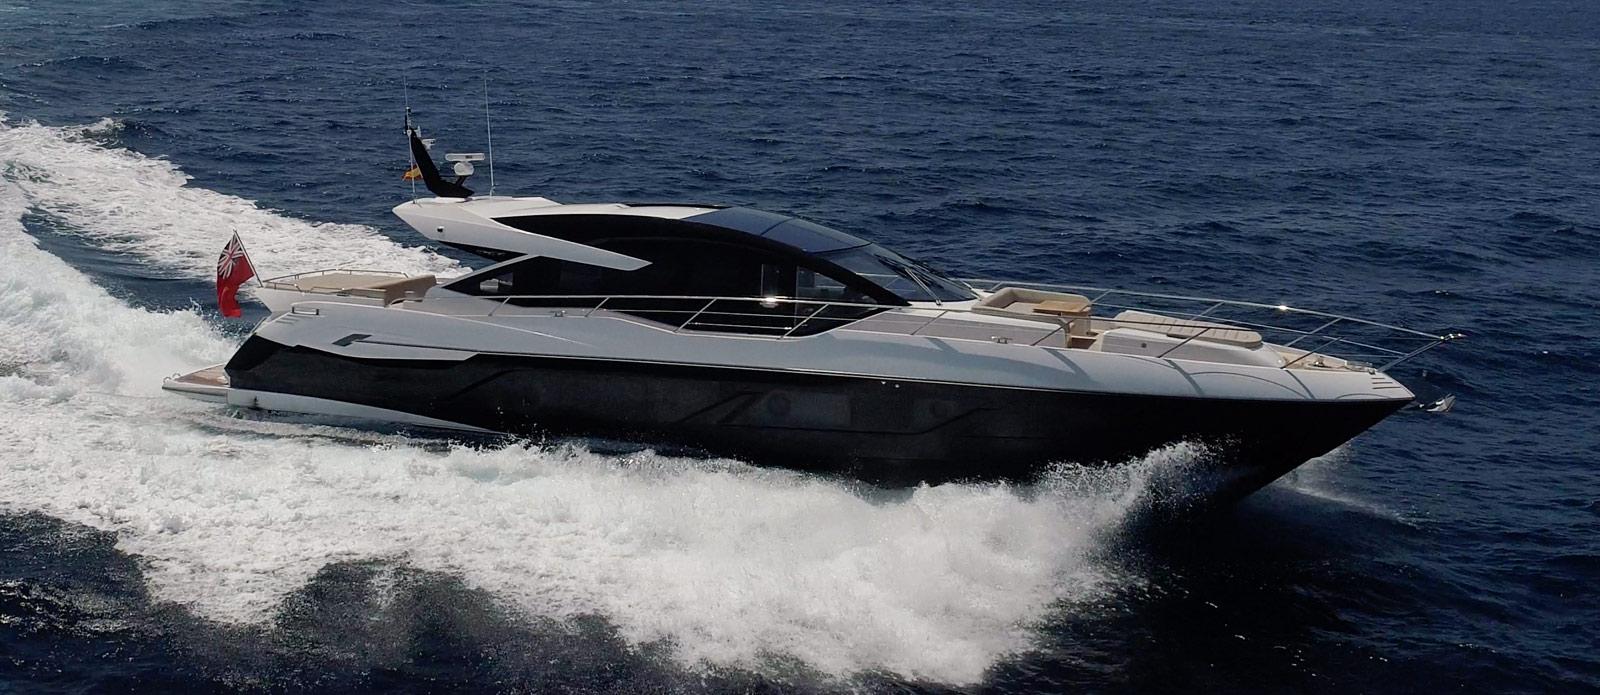 Sunseeker 74 Predator - Side-Profile-Running